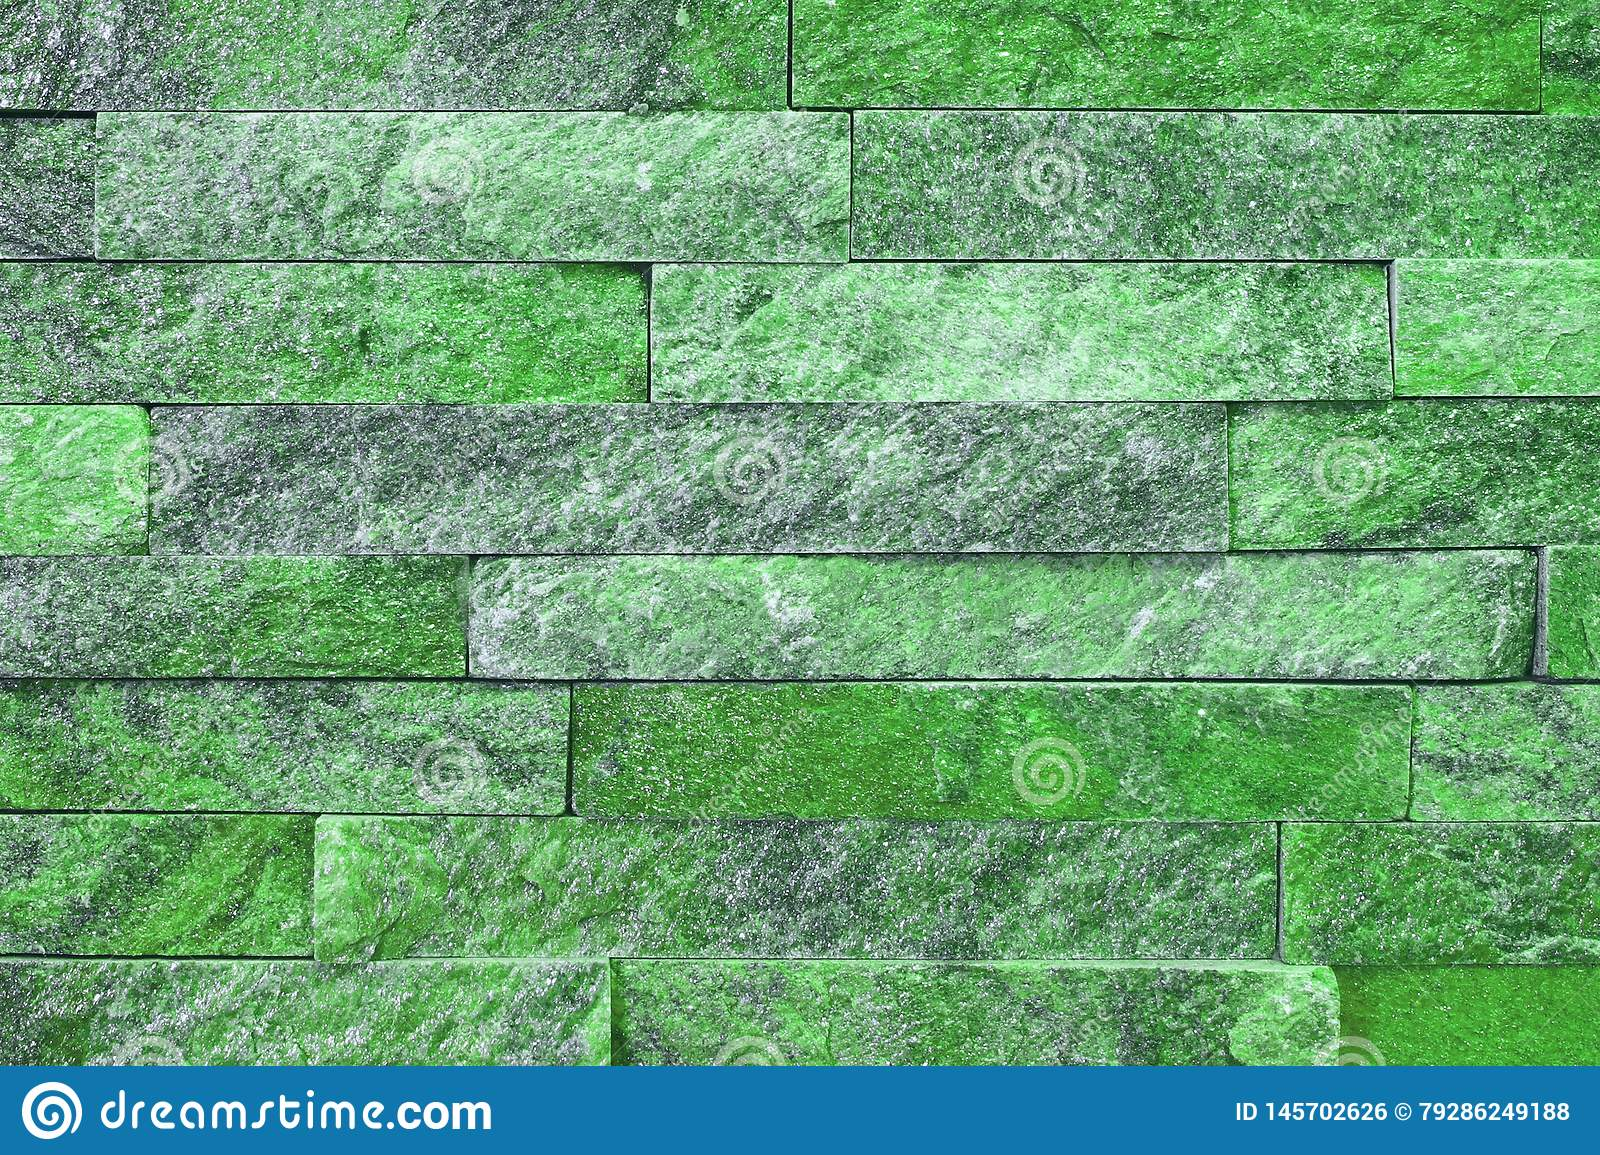 Nice grunge natural quartzite stone bricks texture for background use